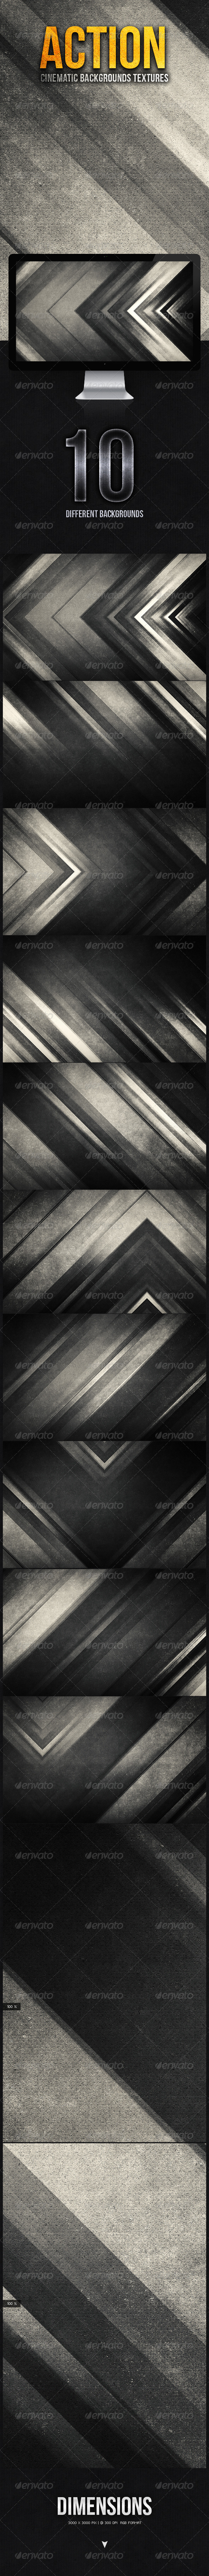 GraphicRiver Action Cinematic Backgrounds Texture II 5597538